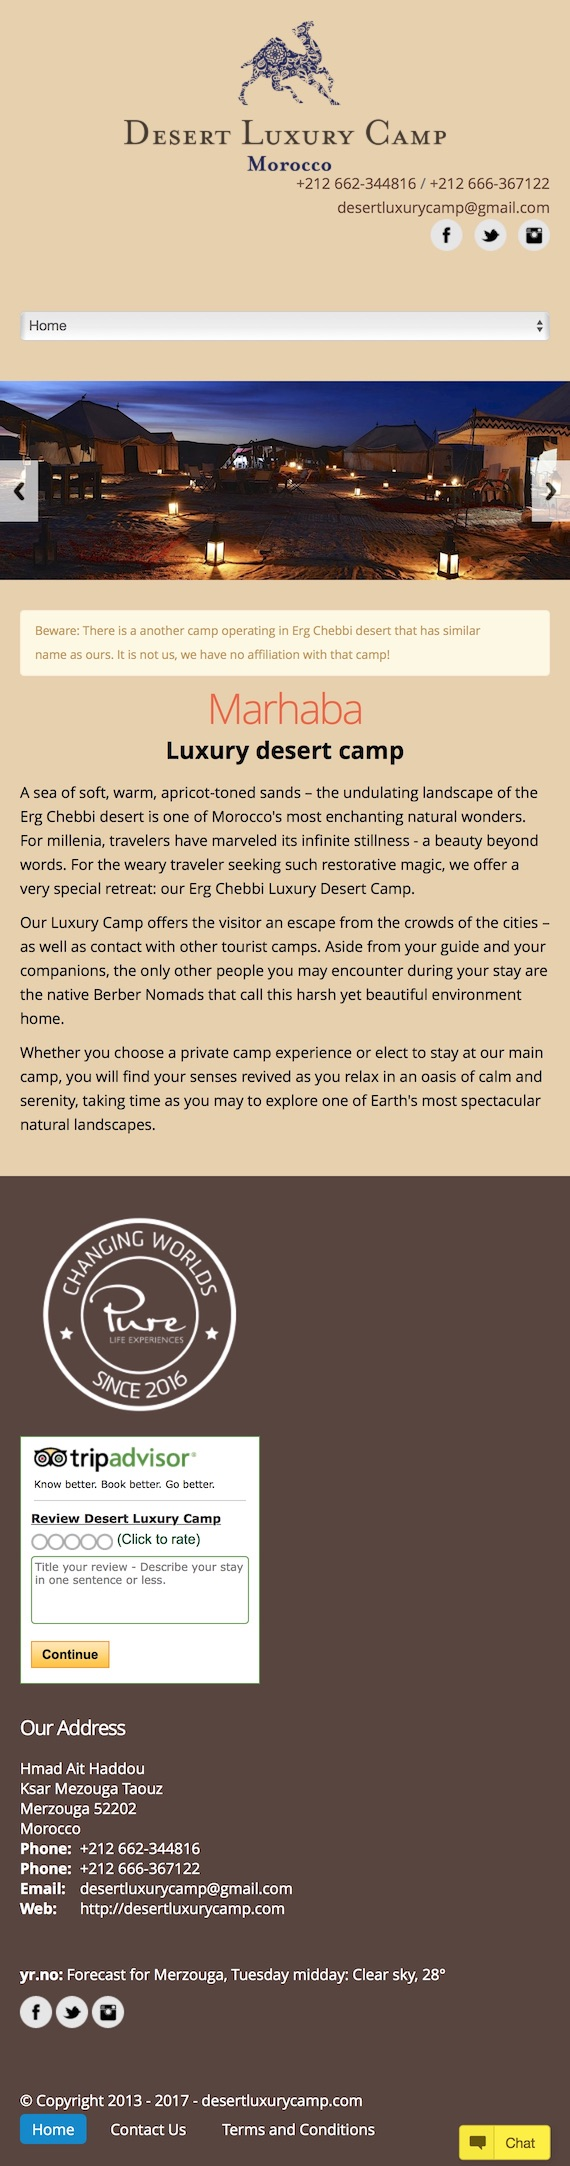 Desert Luxury Camp offers to see earth's most spectacular natural landscapes in Merzouga and Erg Chebbi from Morocco desert.